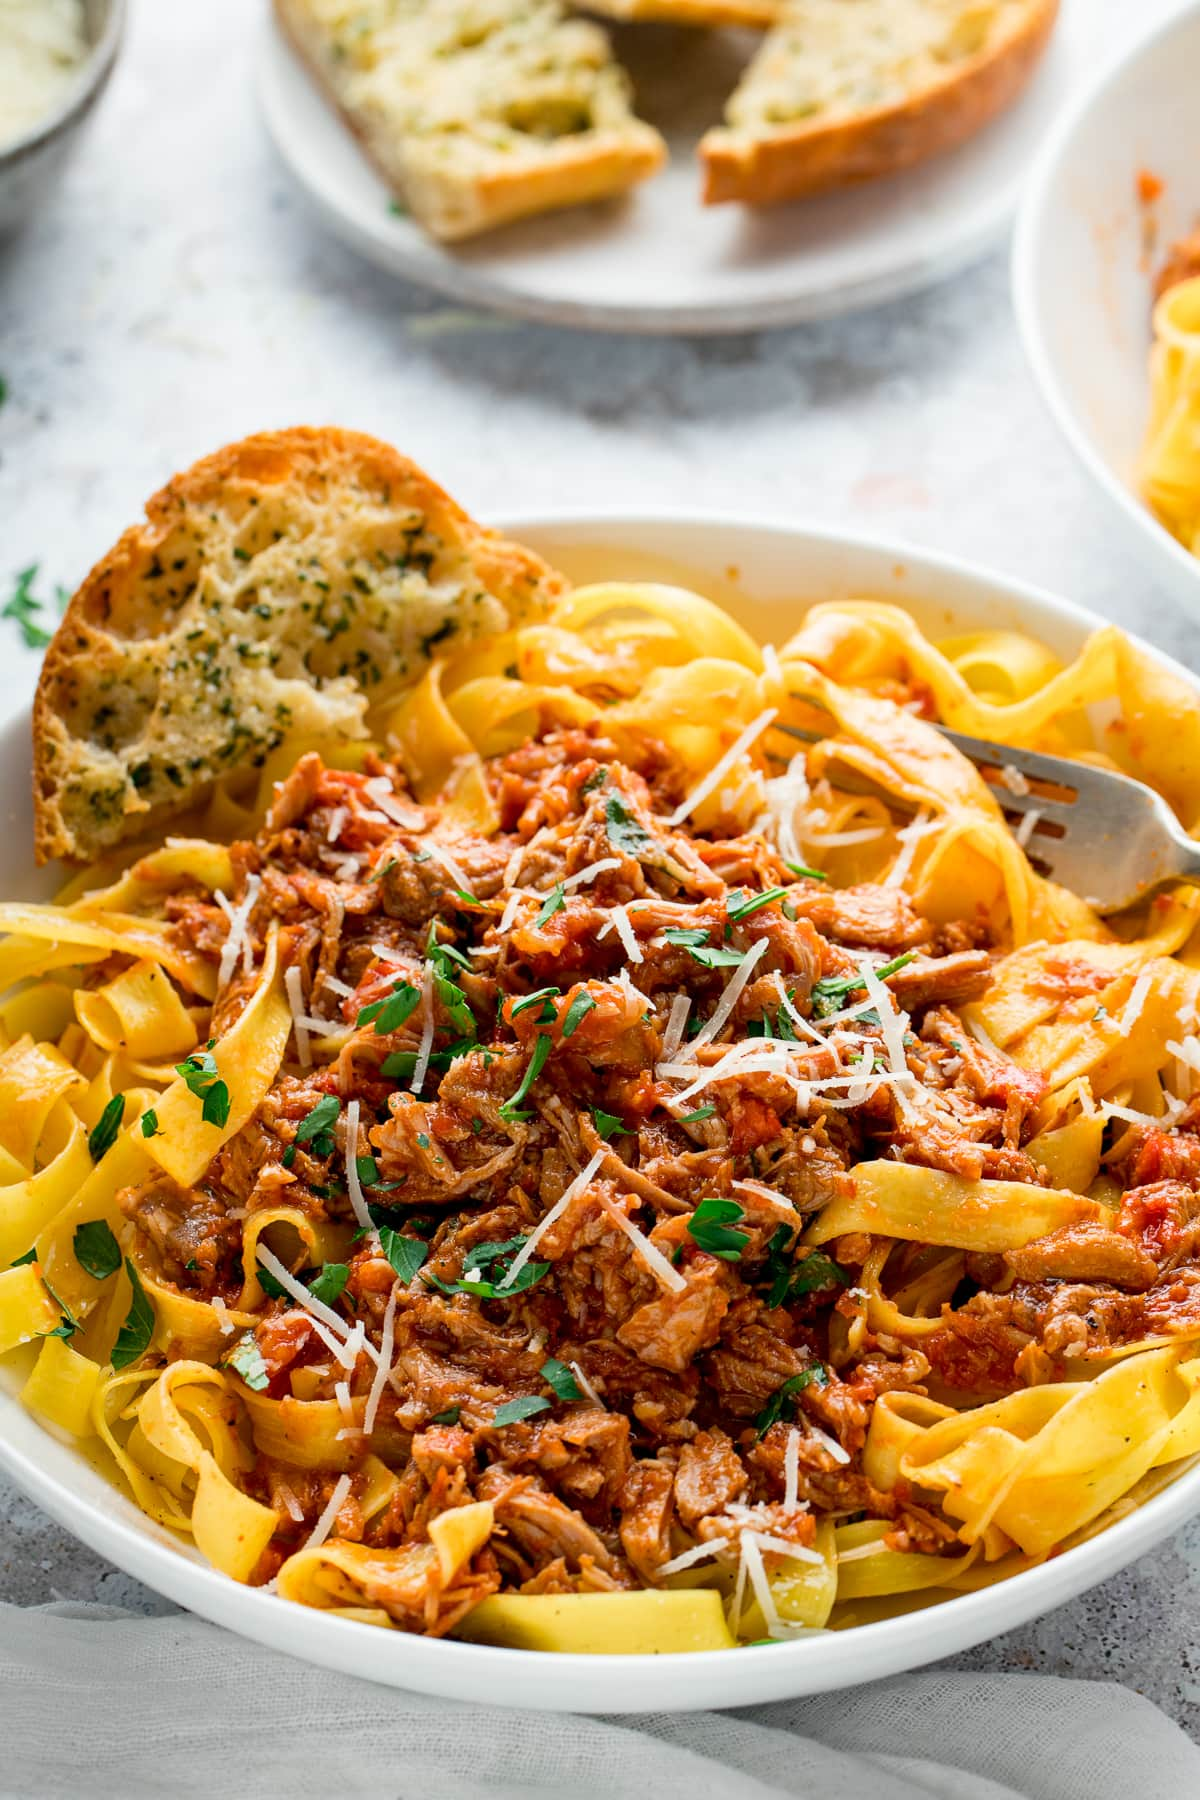 slow cooked pork ragu on top of tagliatelle in a white bowl with garlic bread